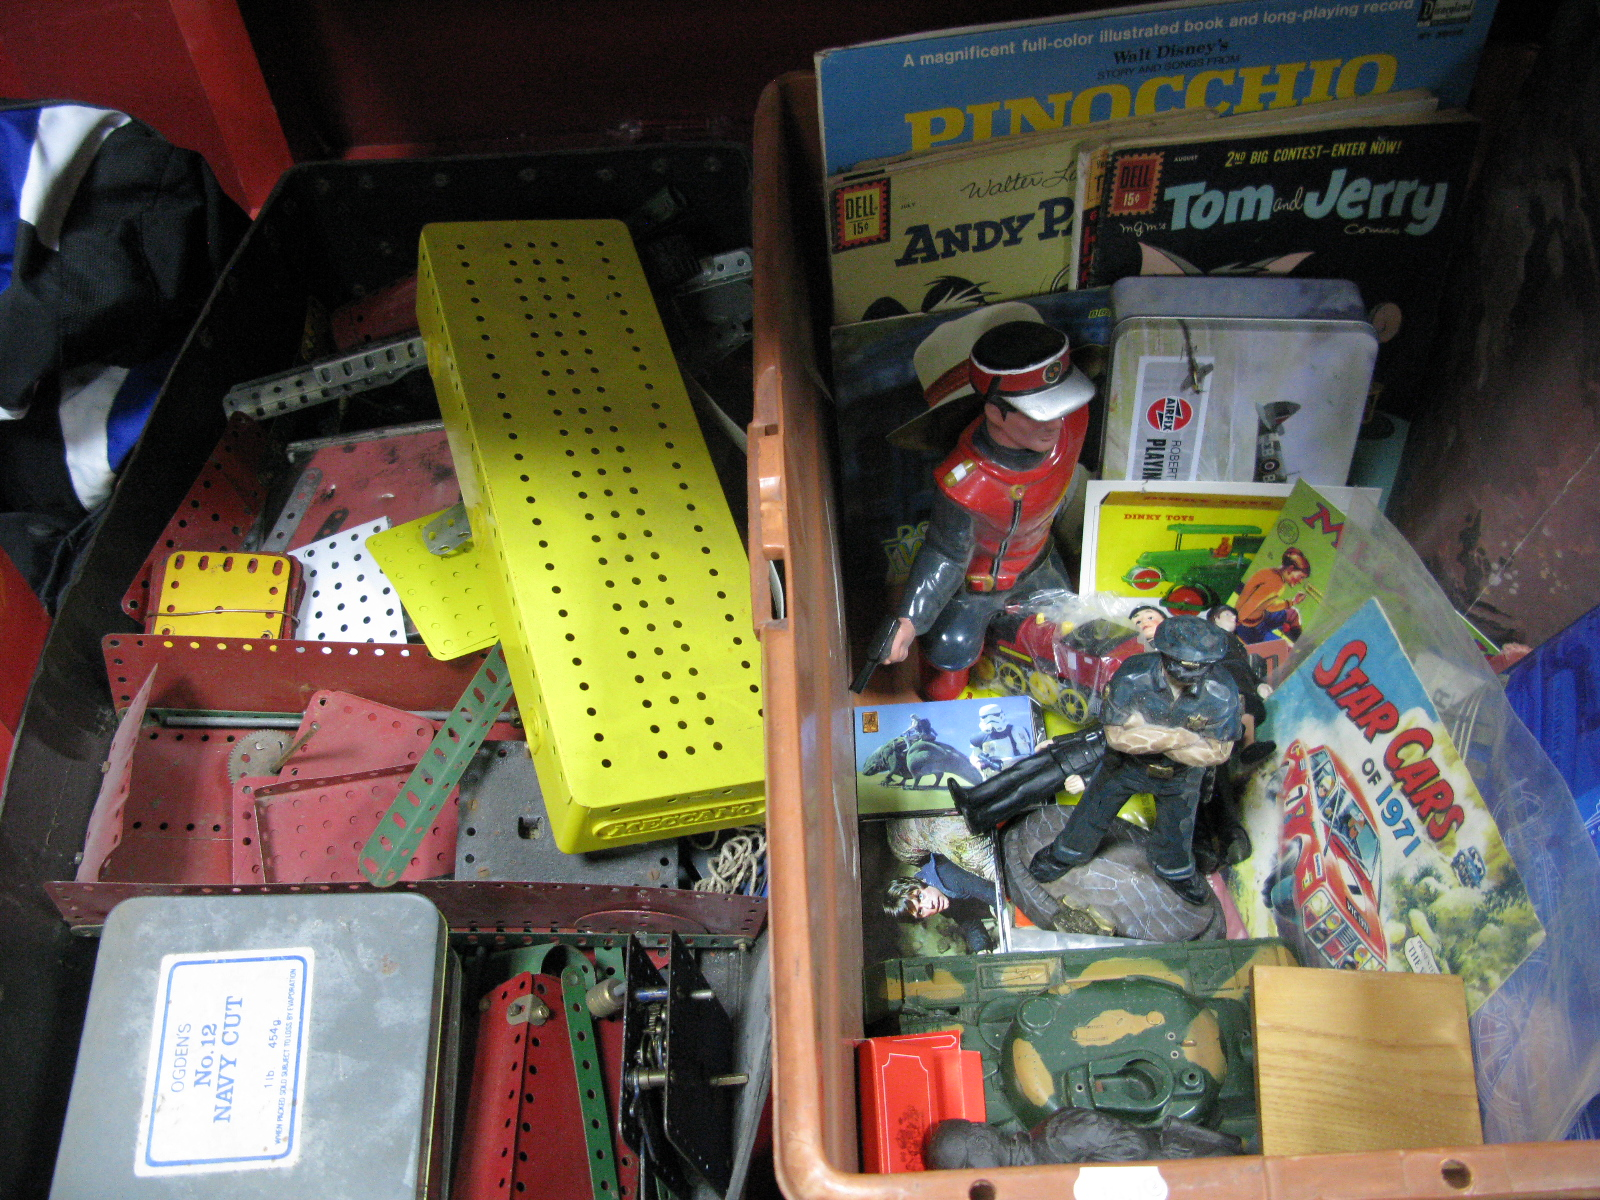 Lot 1029 - Meccano Accessories, (red, green, yellow), US 'Dell' comics (Tom & Jerry, Andy Pandy, Yogi etc),